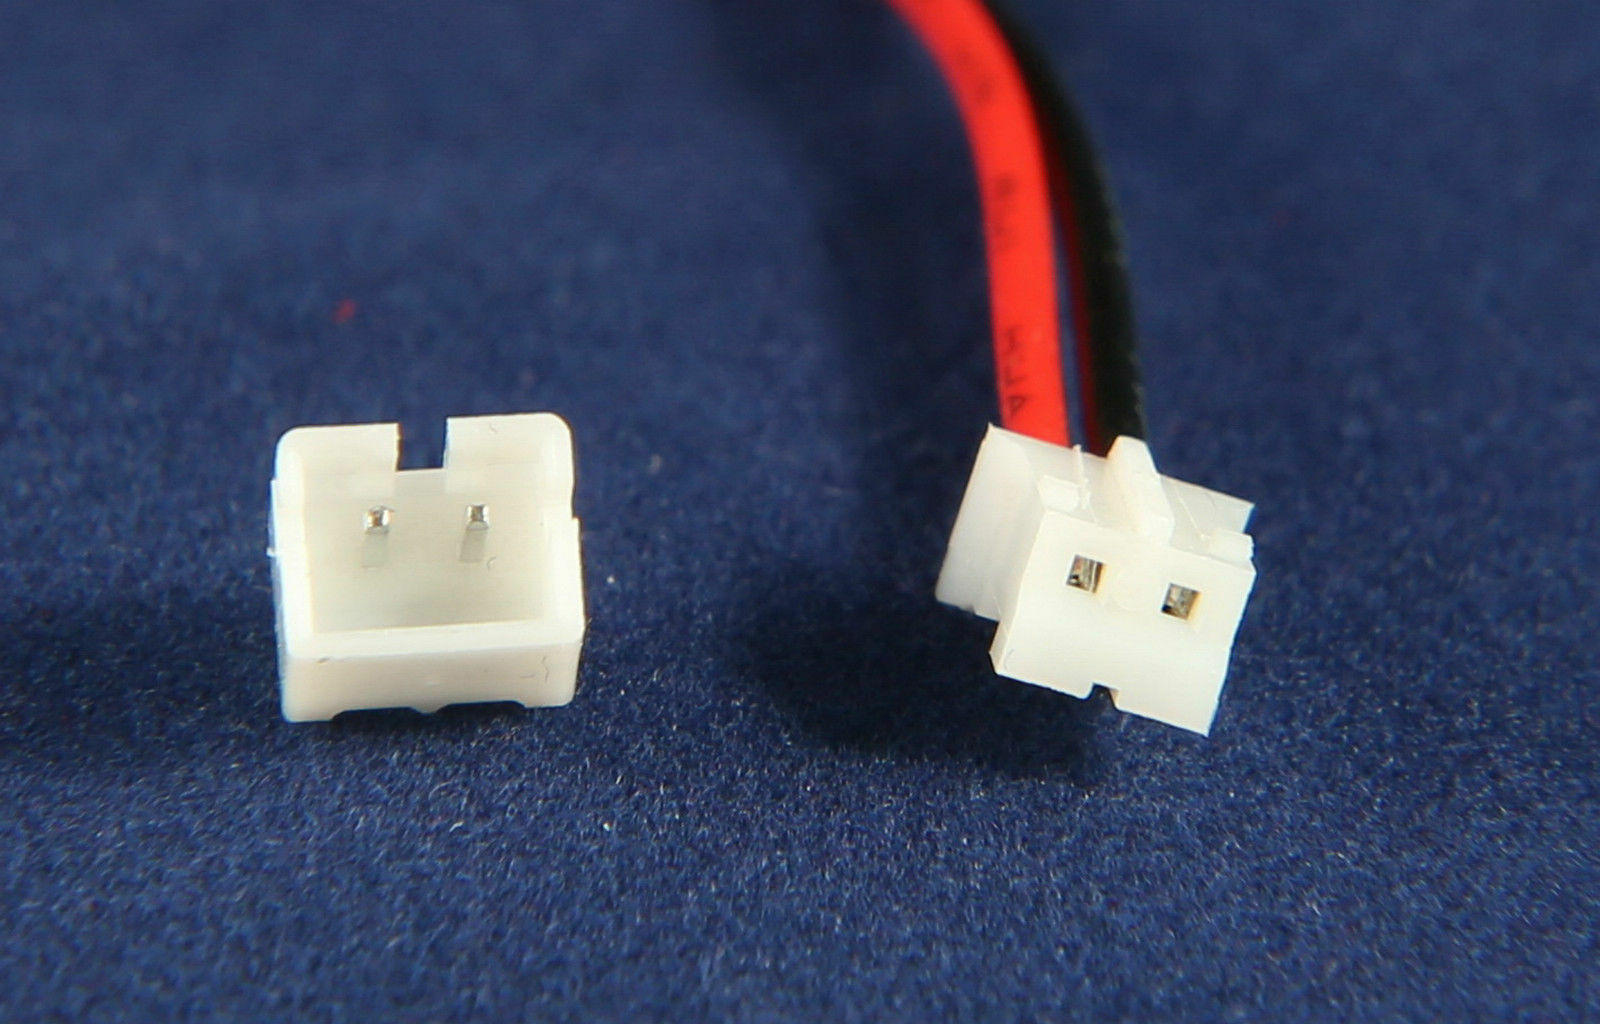 Micro JST 1.25 2-Pin Male Battery Connector Plug Wires and Female Plug 1000sets